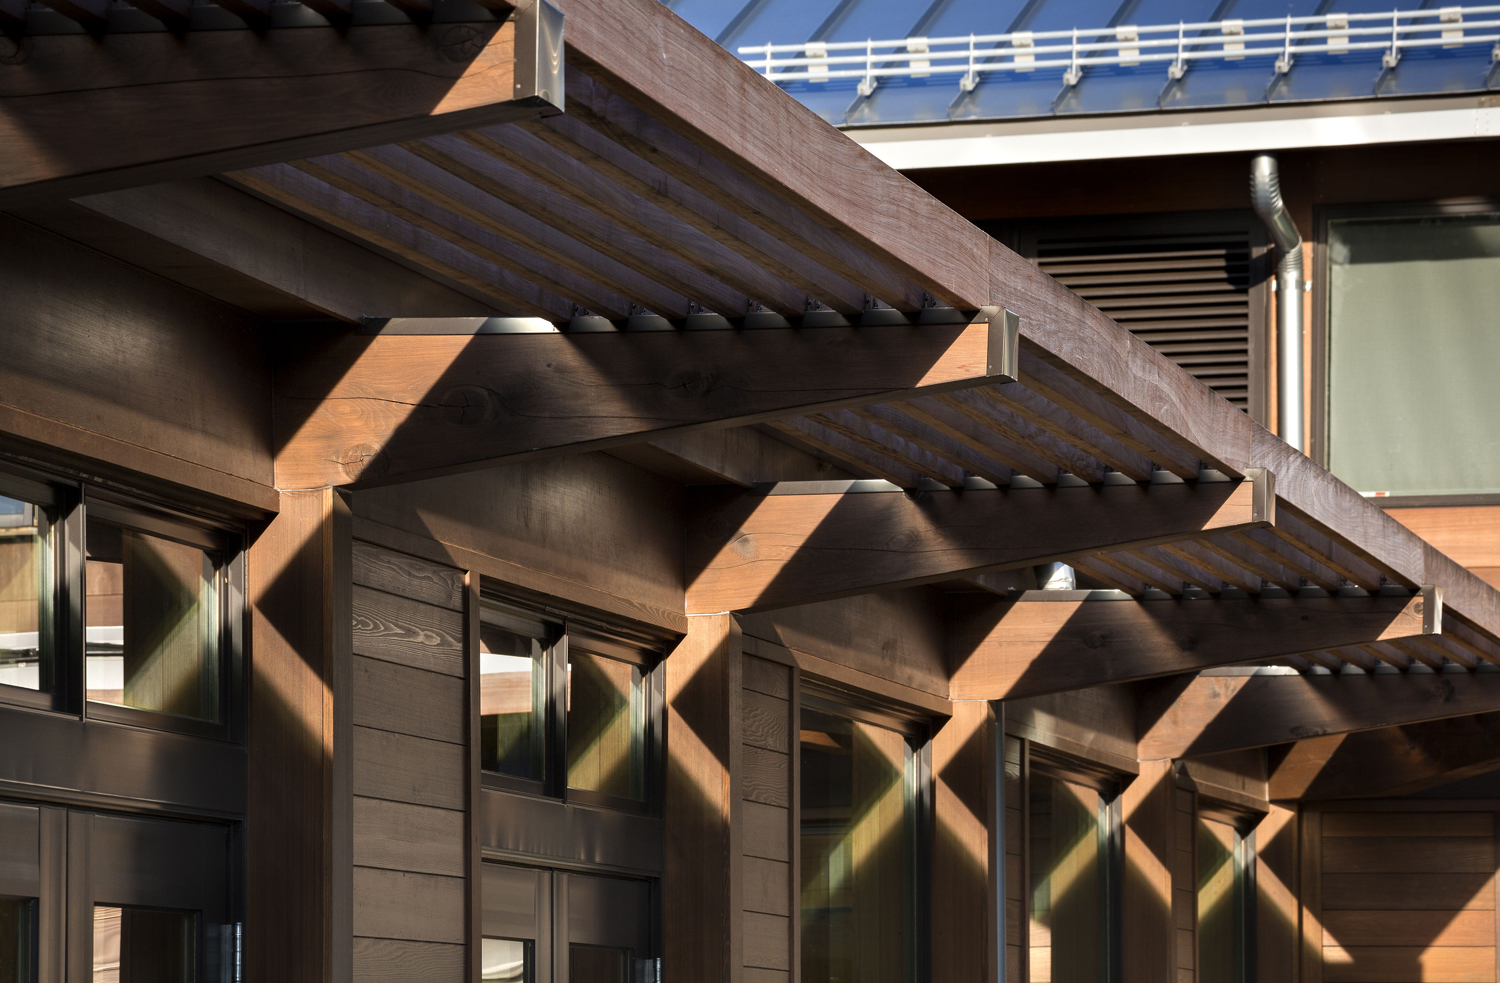 <p>The cloister-like, single-loaded corridor design includes deep exterior eaves and south-facing sunshades that minimize summer solar heat gain but allow beneficial winter heat gain.</p>